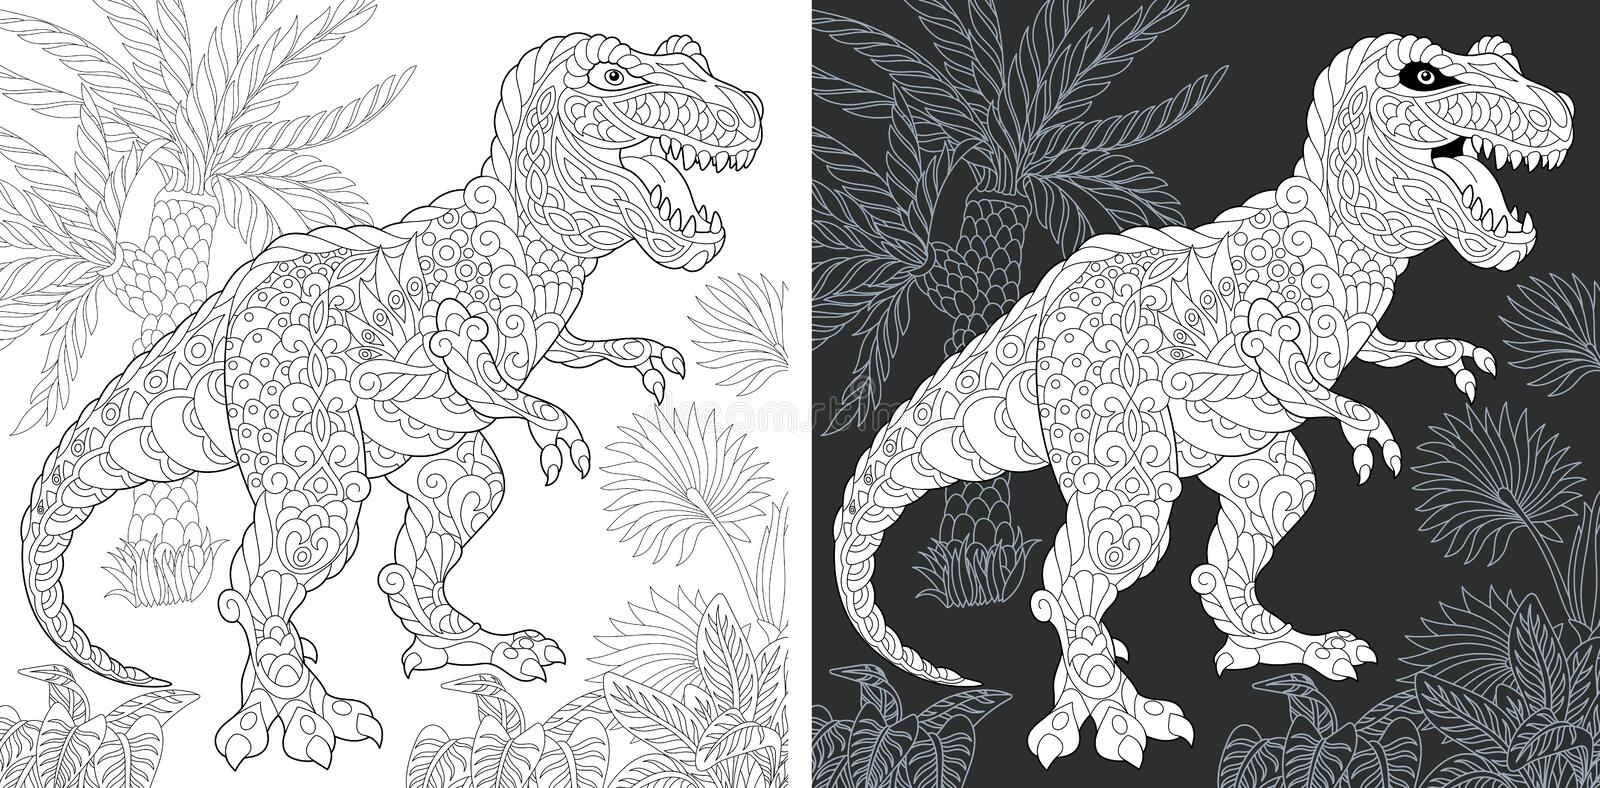 Dinosaur Tyrannosaurus Rex Coloring Pages Stock Illustration Illustration Of Reptilian Cretaceous 35333285